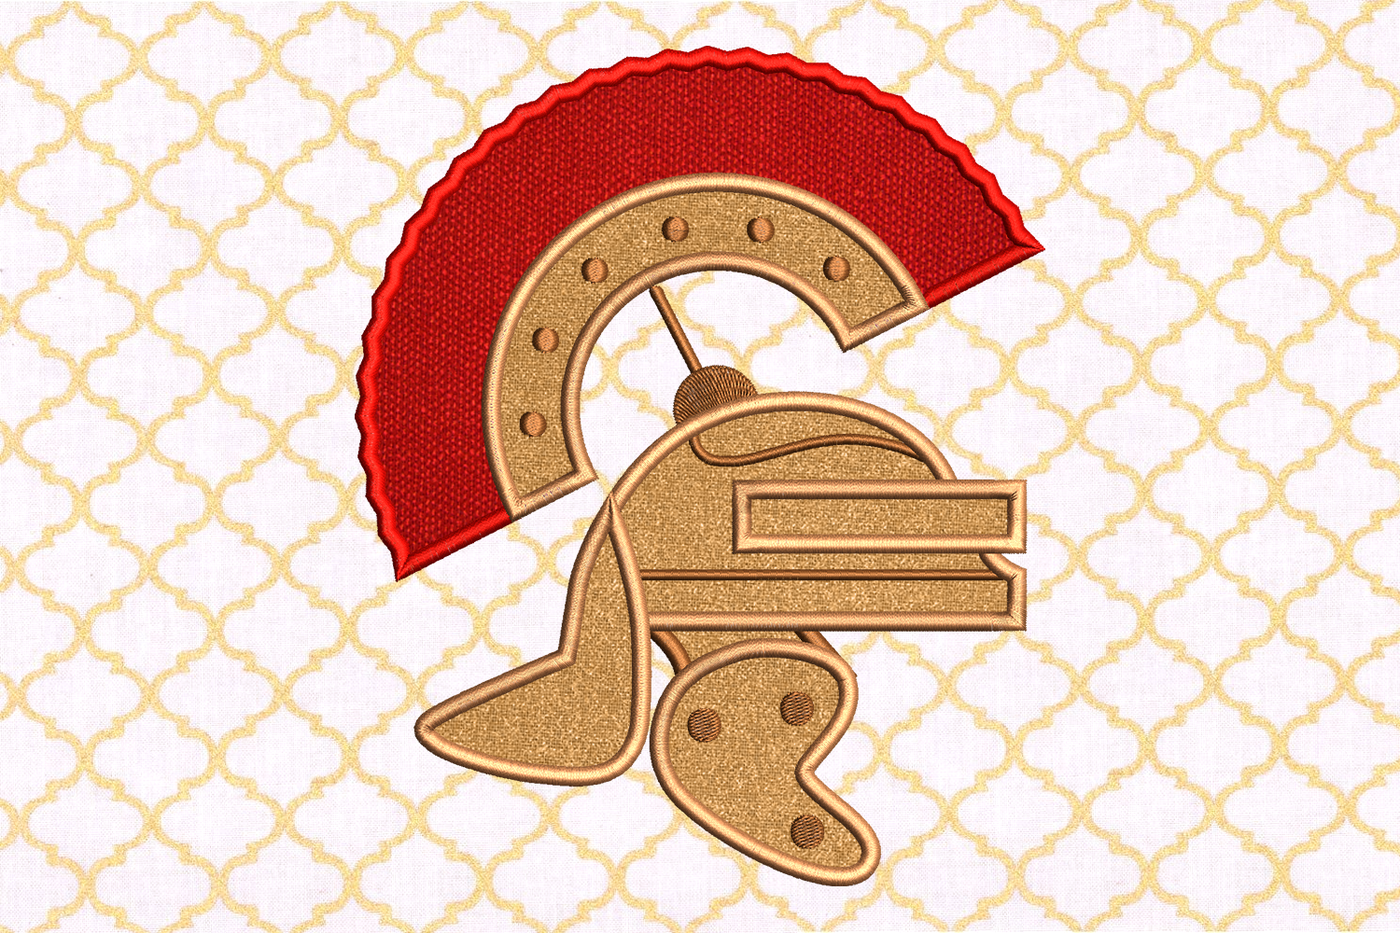 Centurion Helmet Applique Embroidery By Designed By Geeks